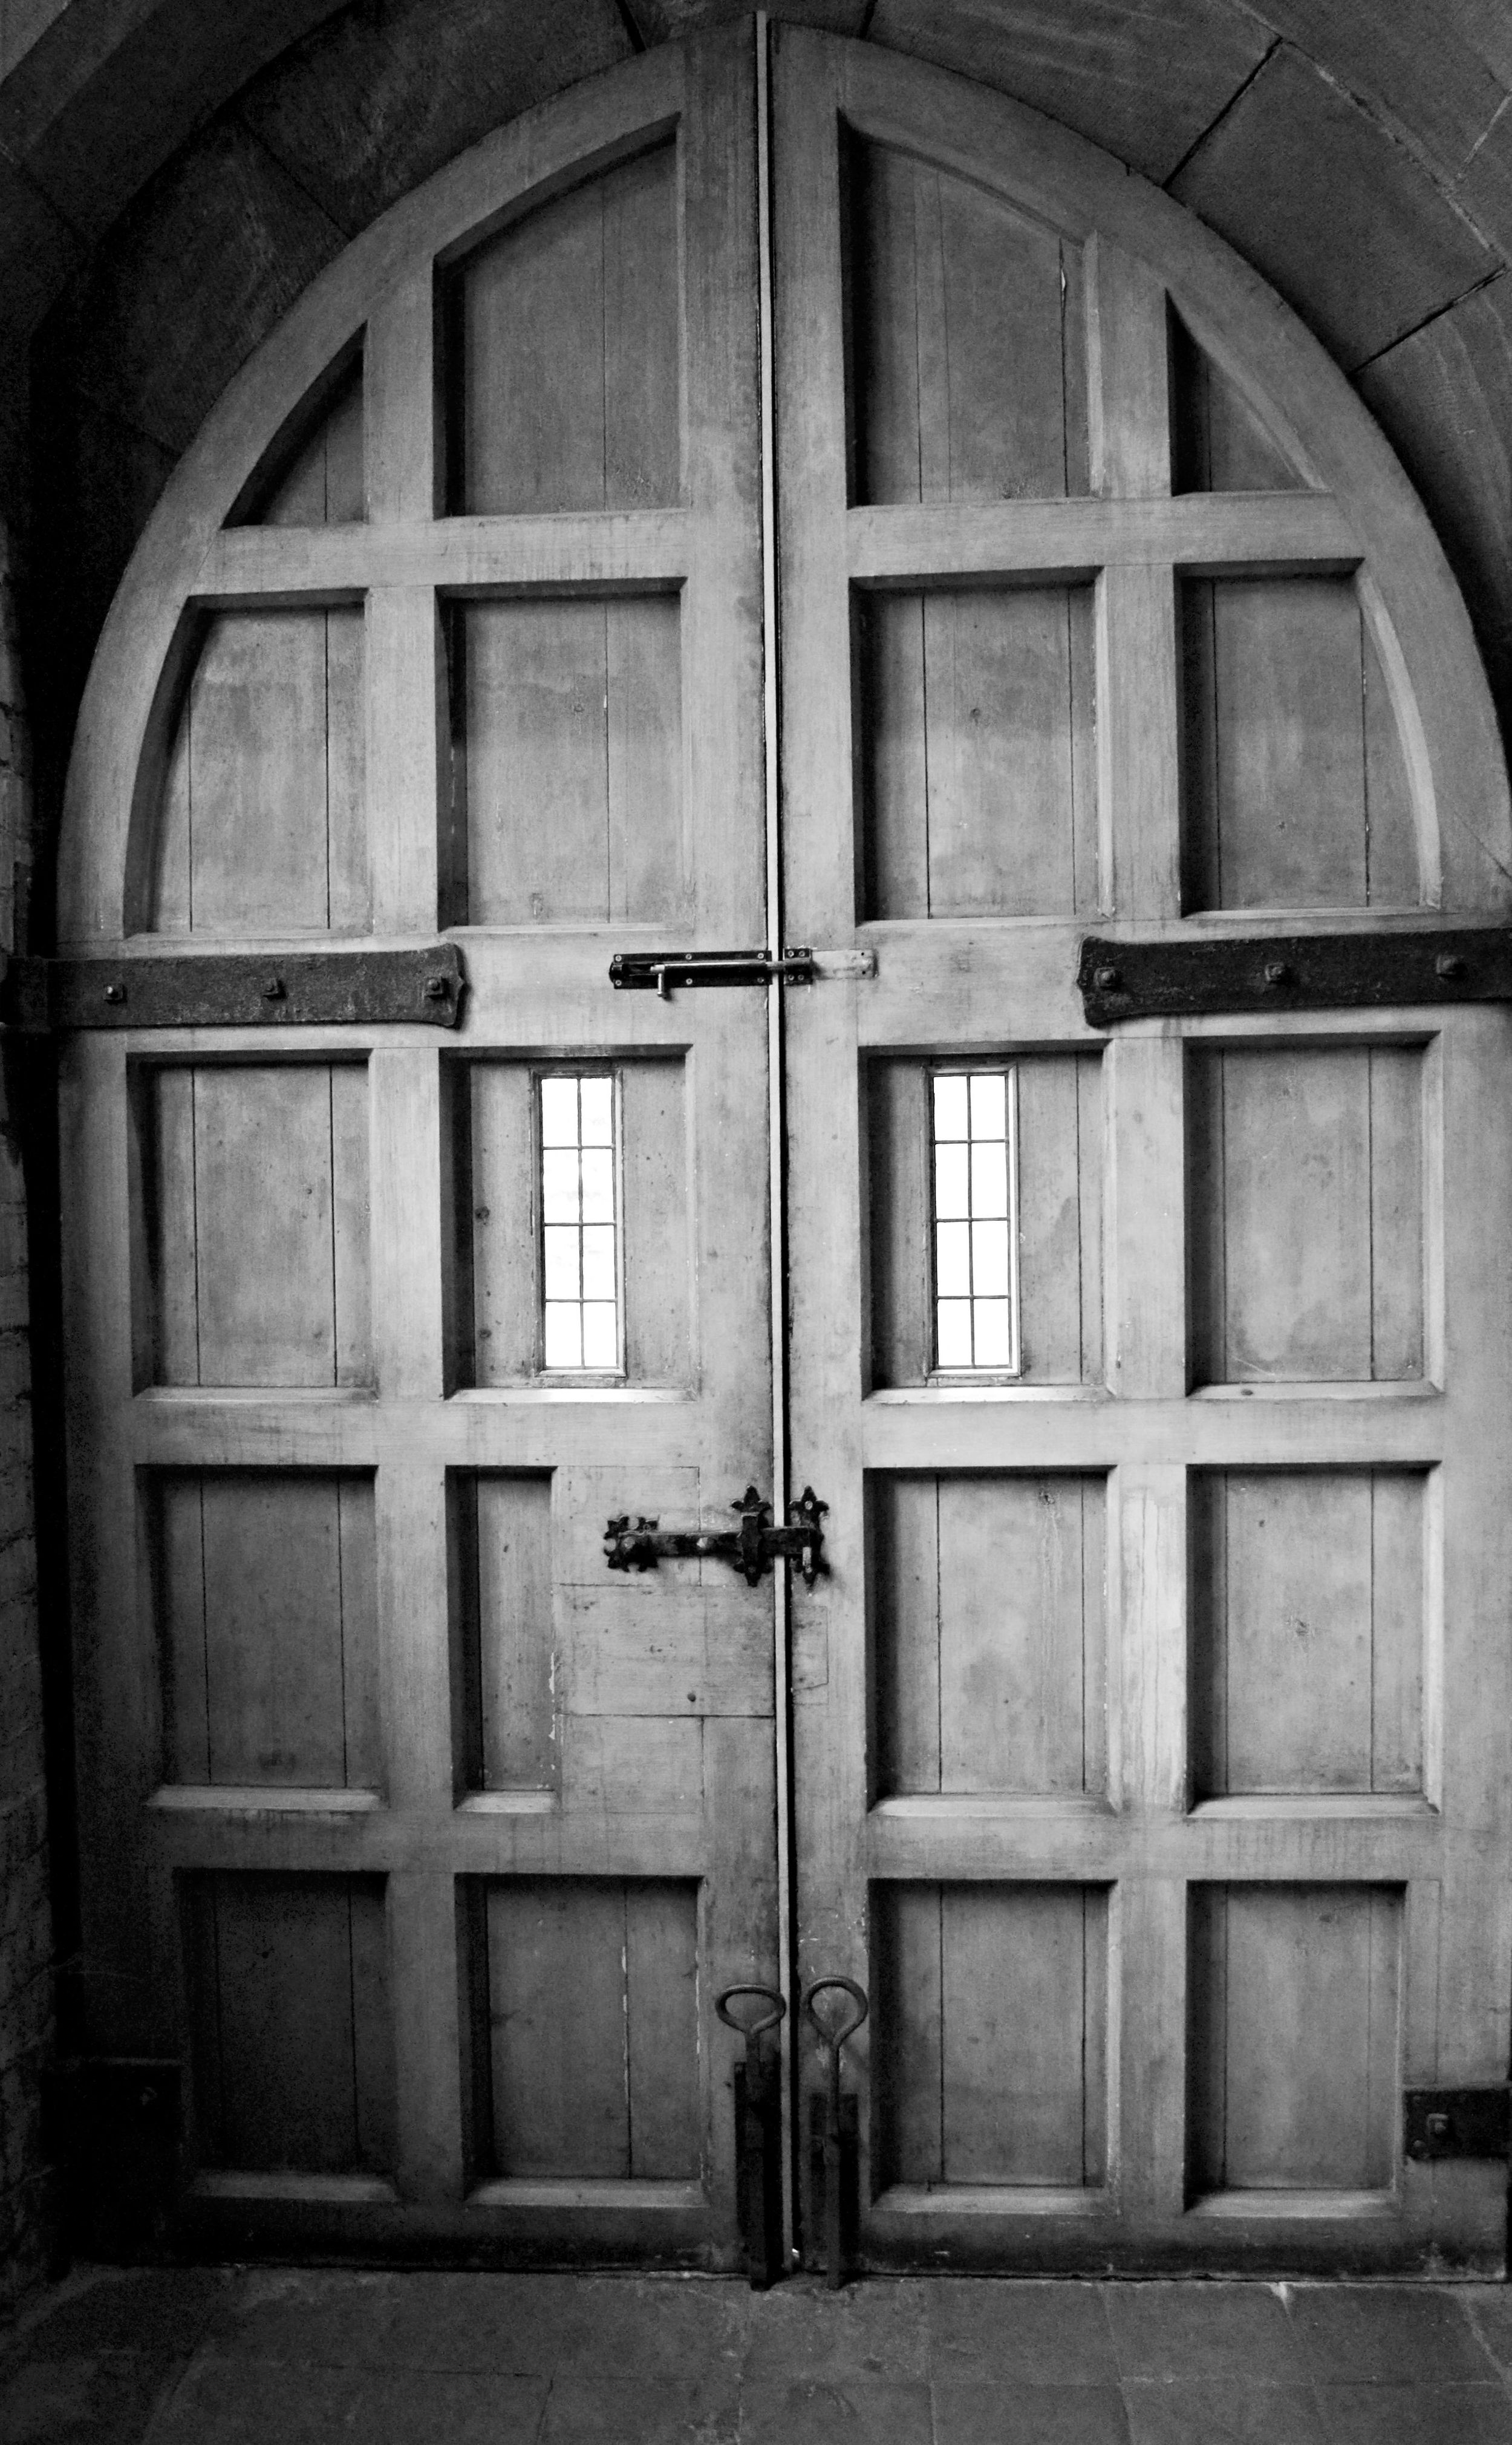 Love this paneled door - the metal work and scale of the windows are right up my street!